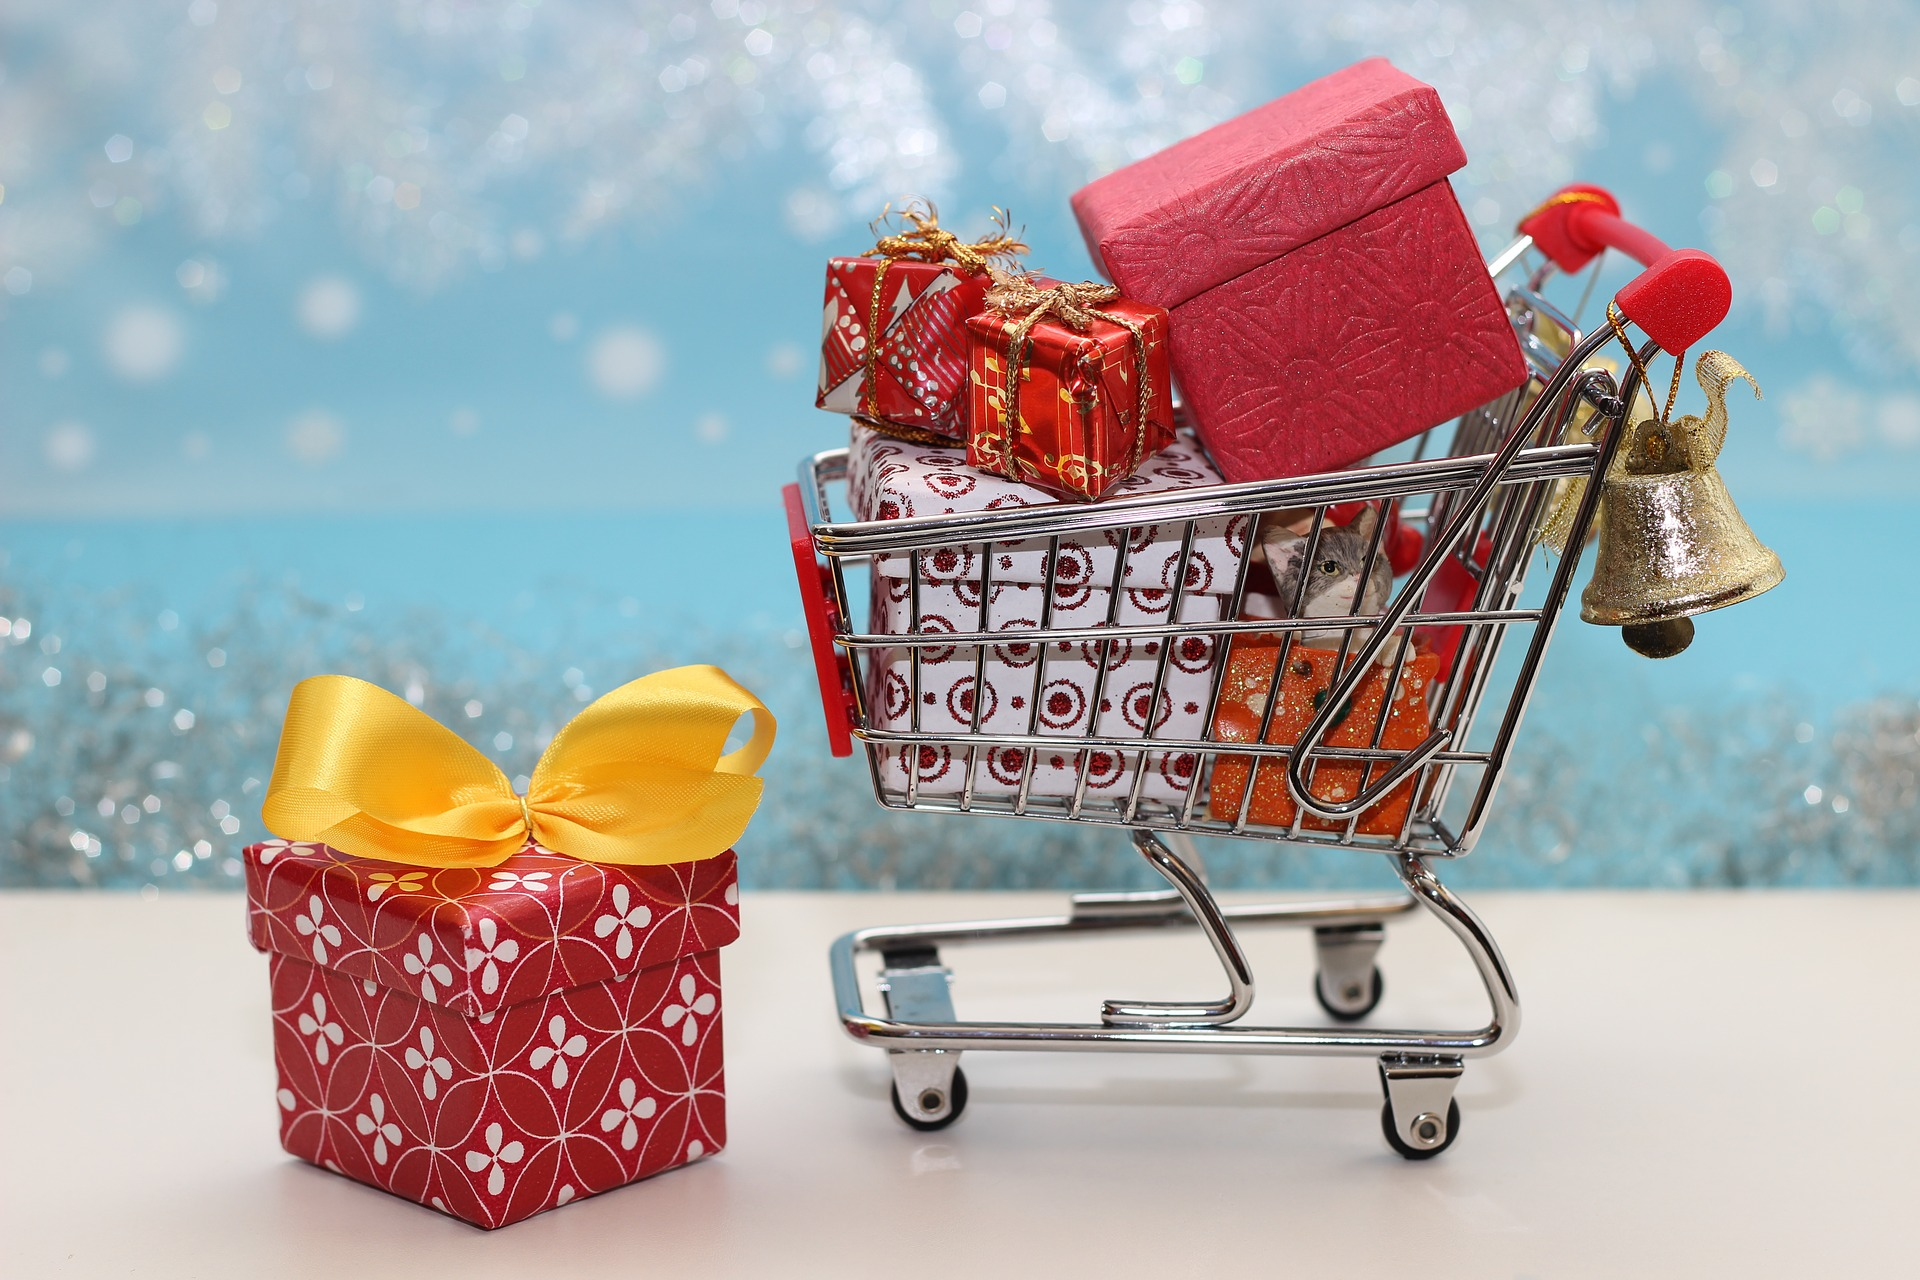 Christmas advertising: Key considerations for advertisers